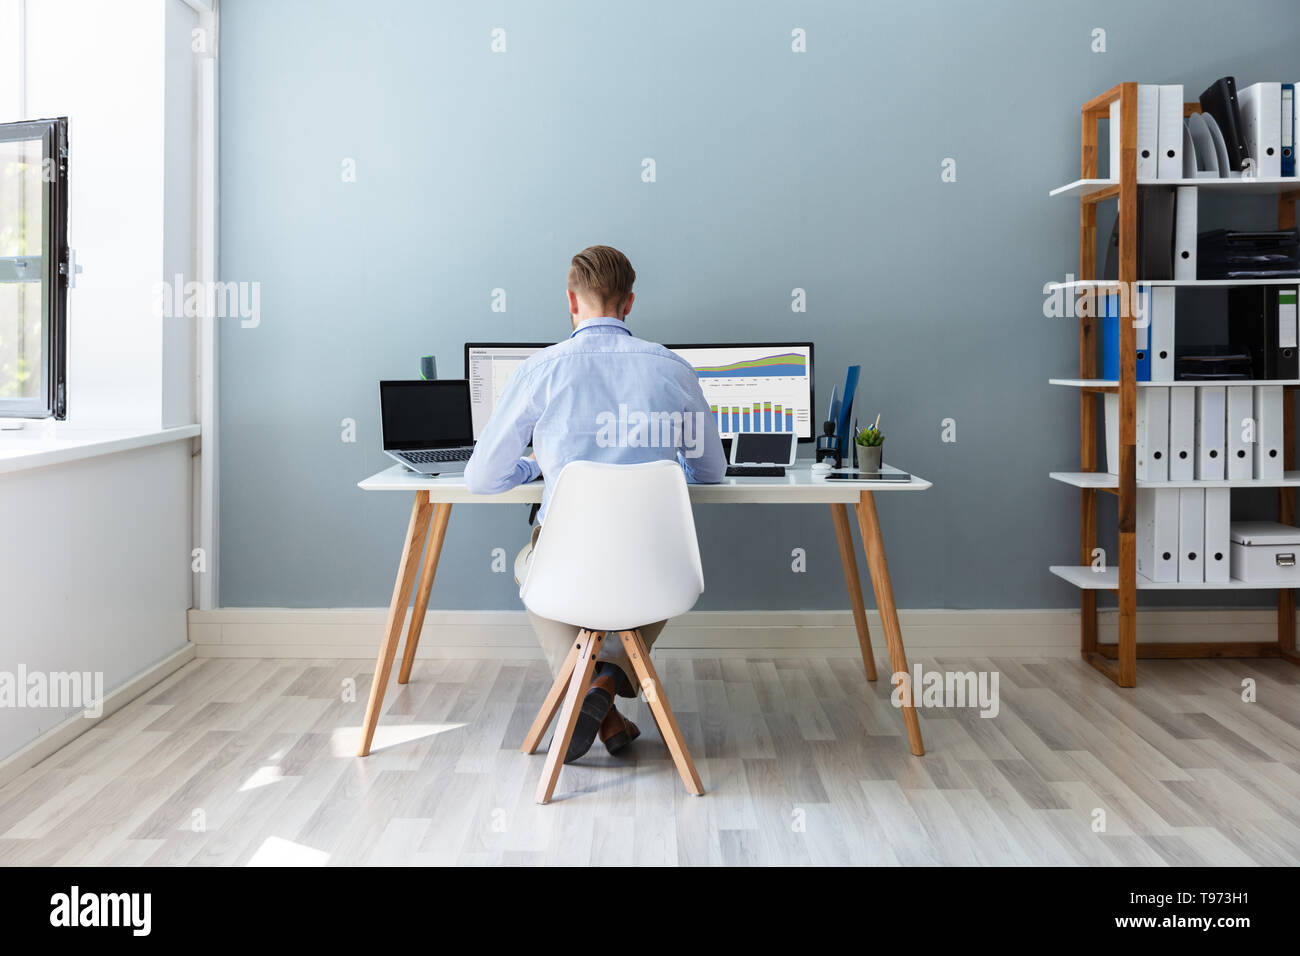 Rear View Of A Businessman Working On Desktop Computer In Office - Stock Image